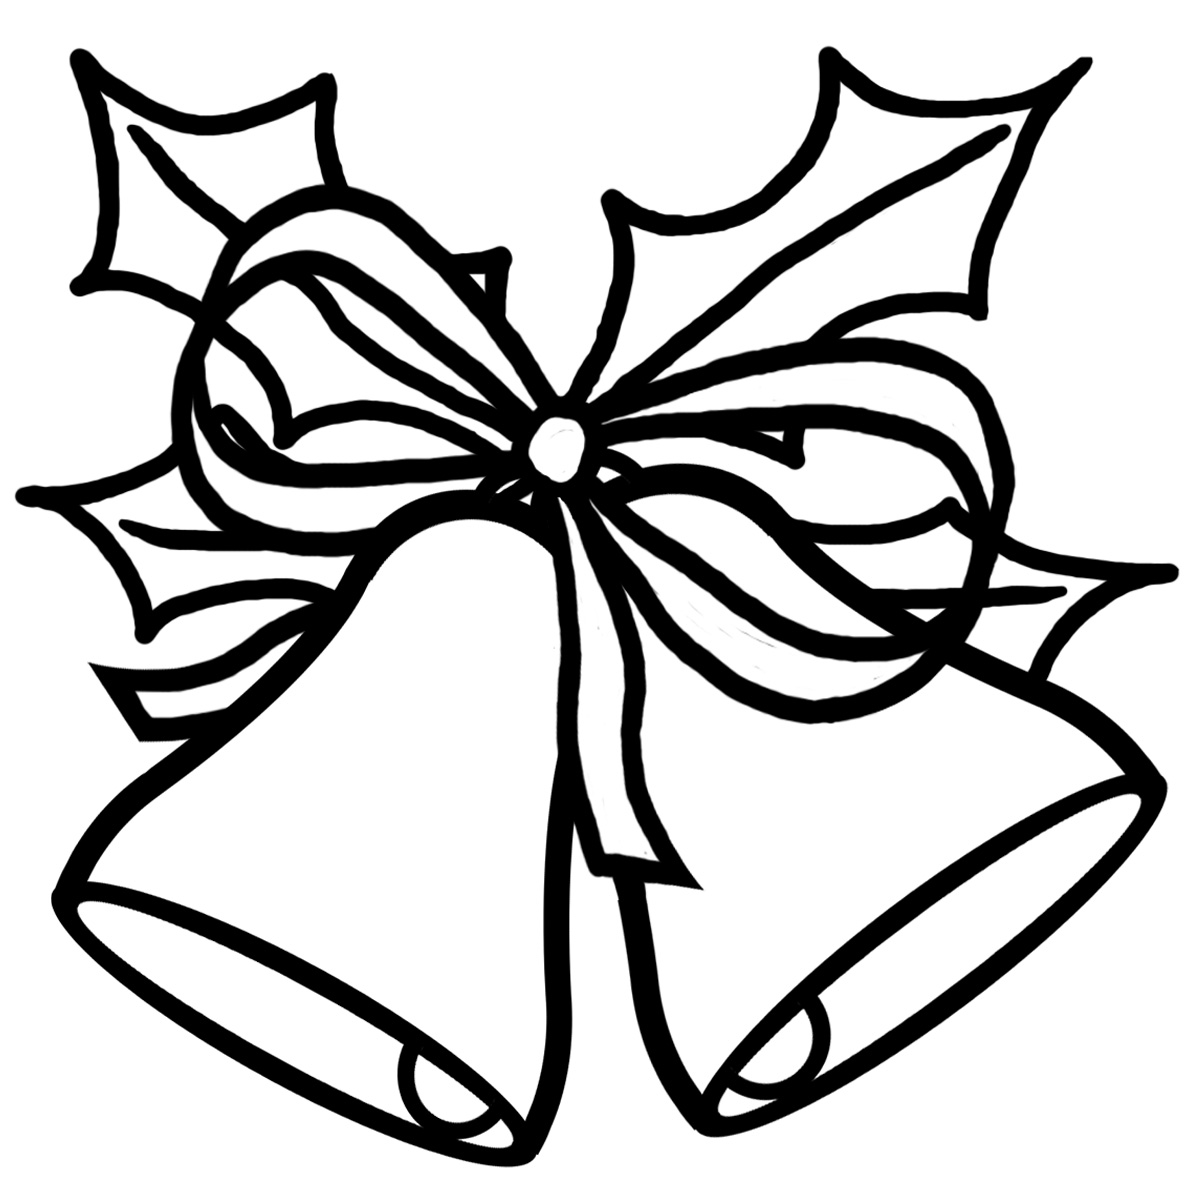 Free Winter Holiday Clip Art - Cliparts.co